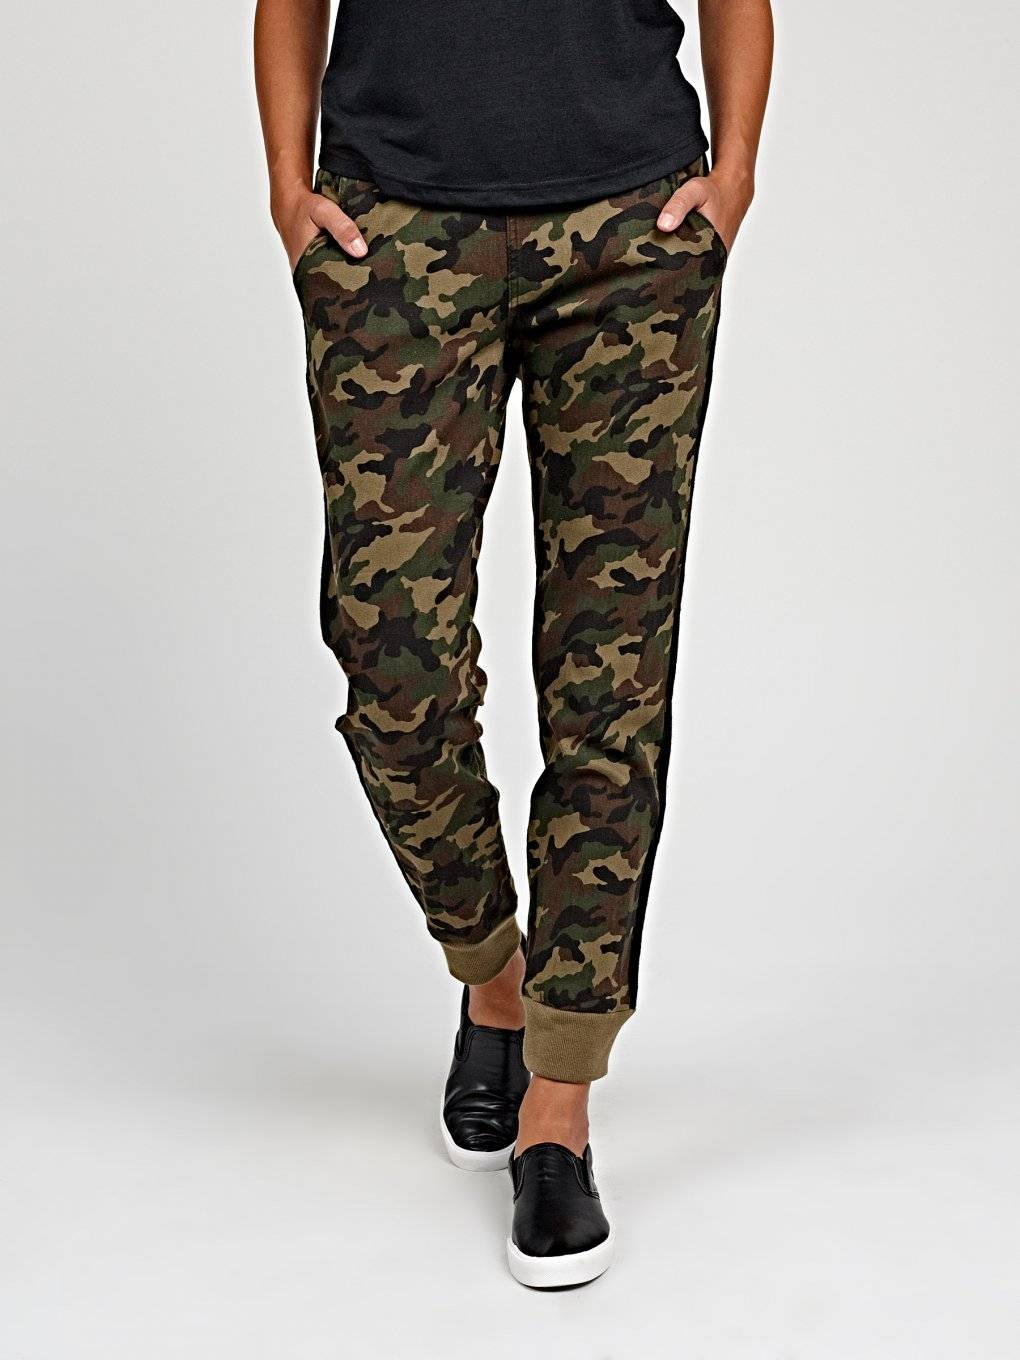 Camo print jogger fit trousers with side tape